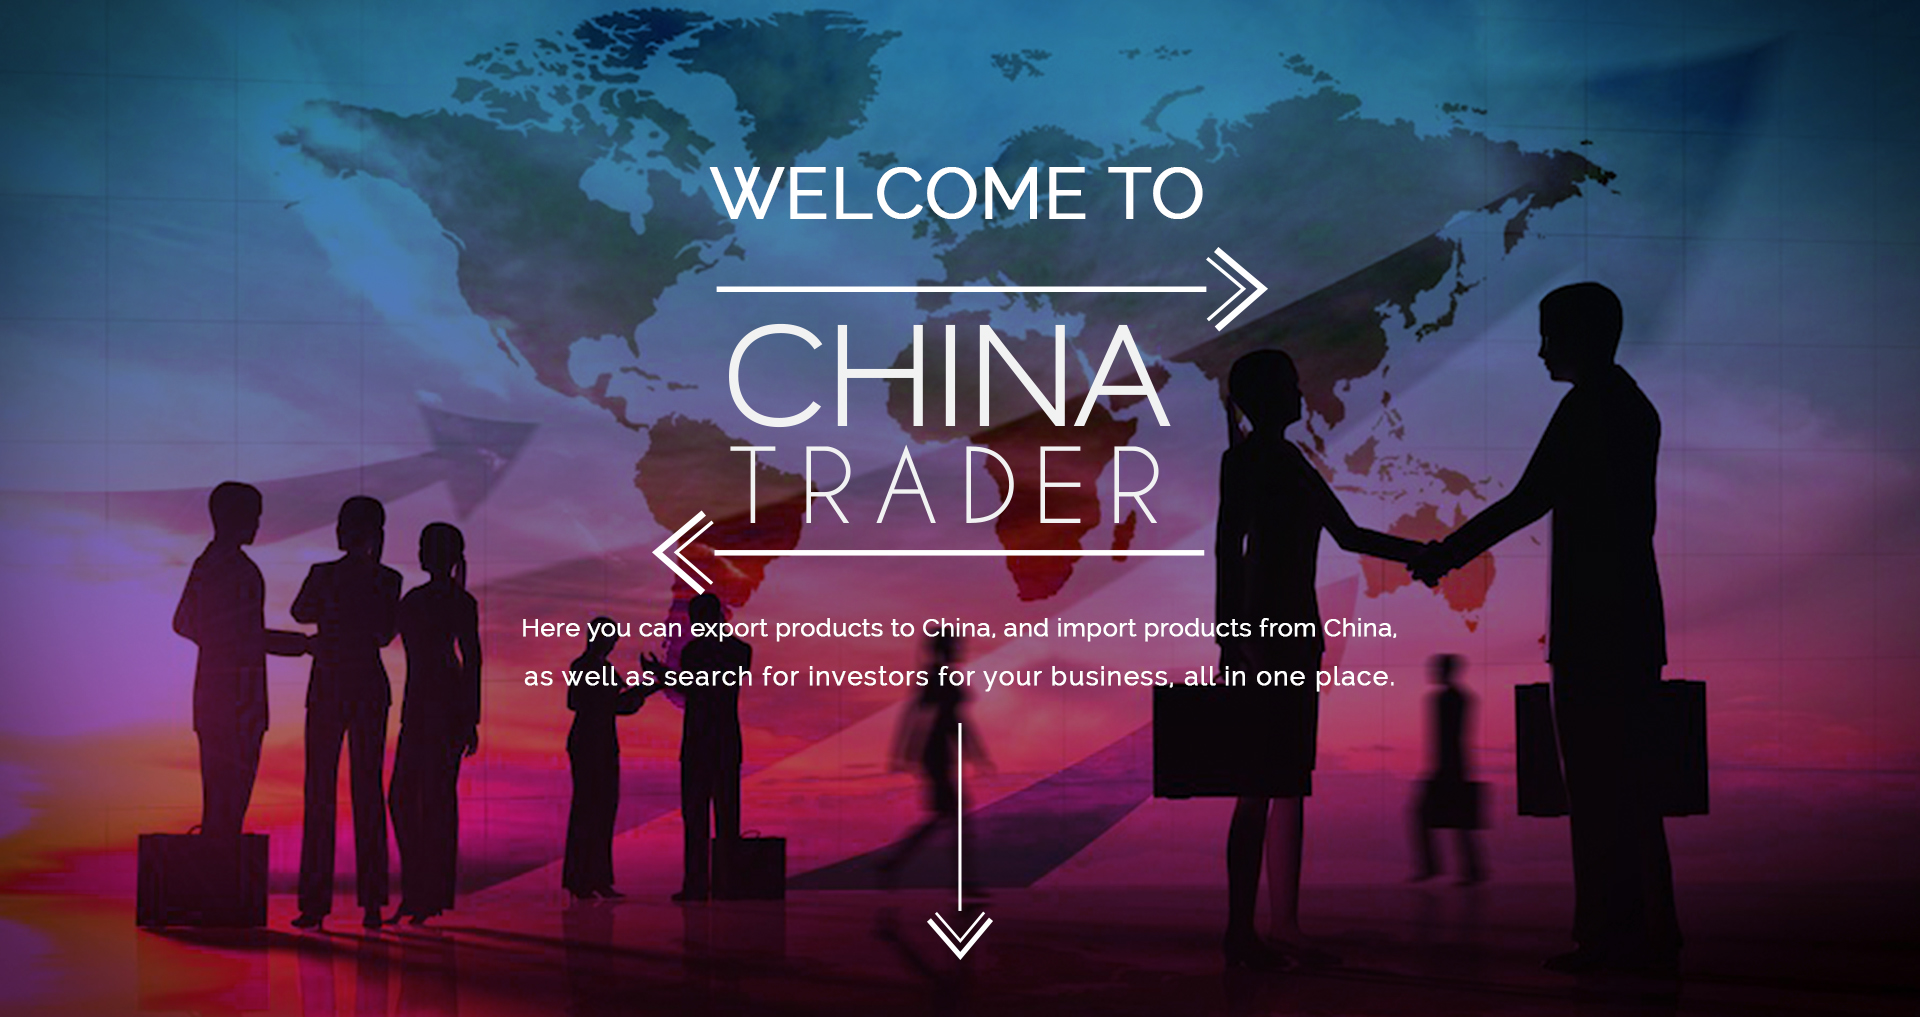 Welcome to CHINA TRADER